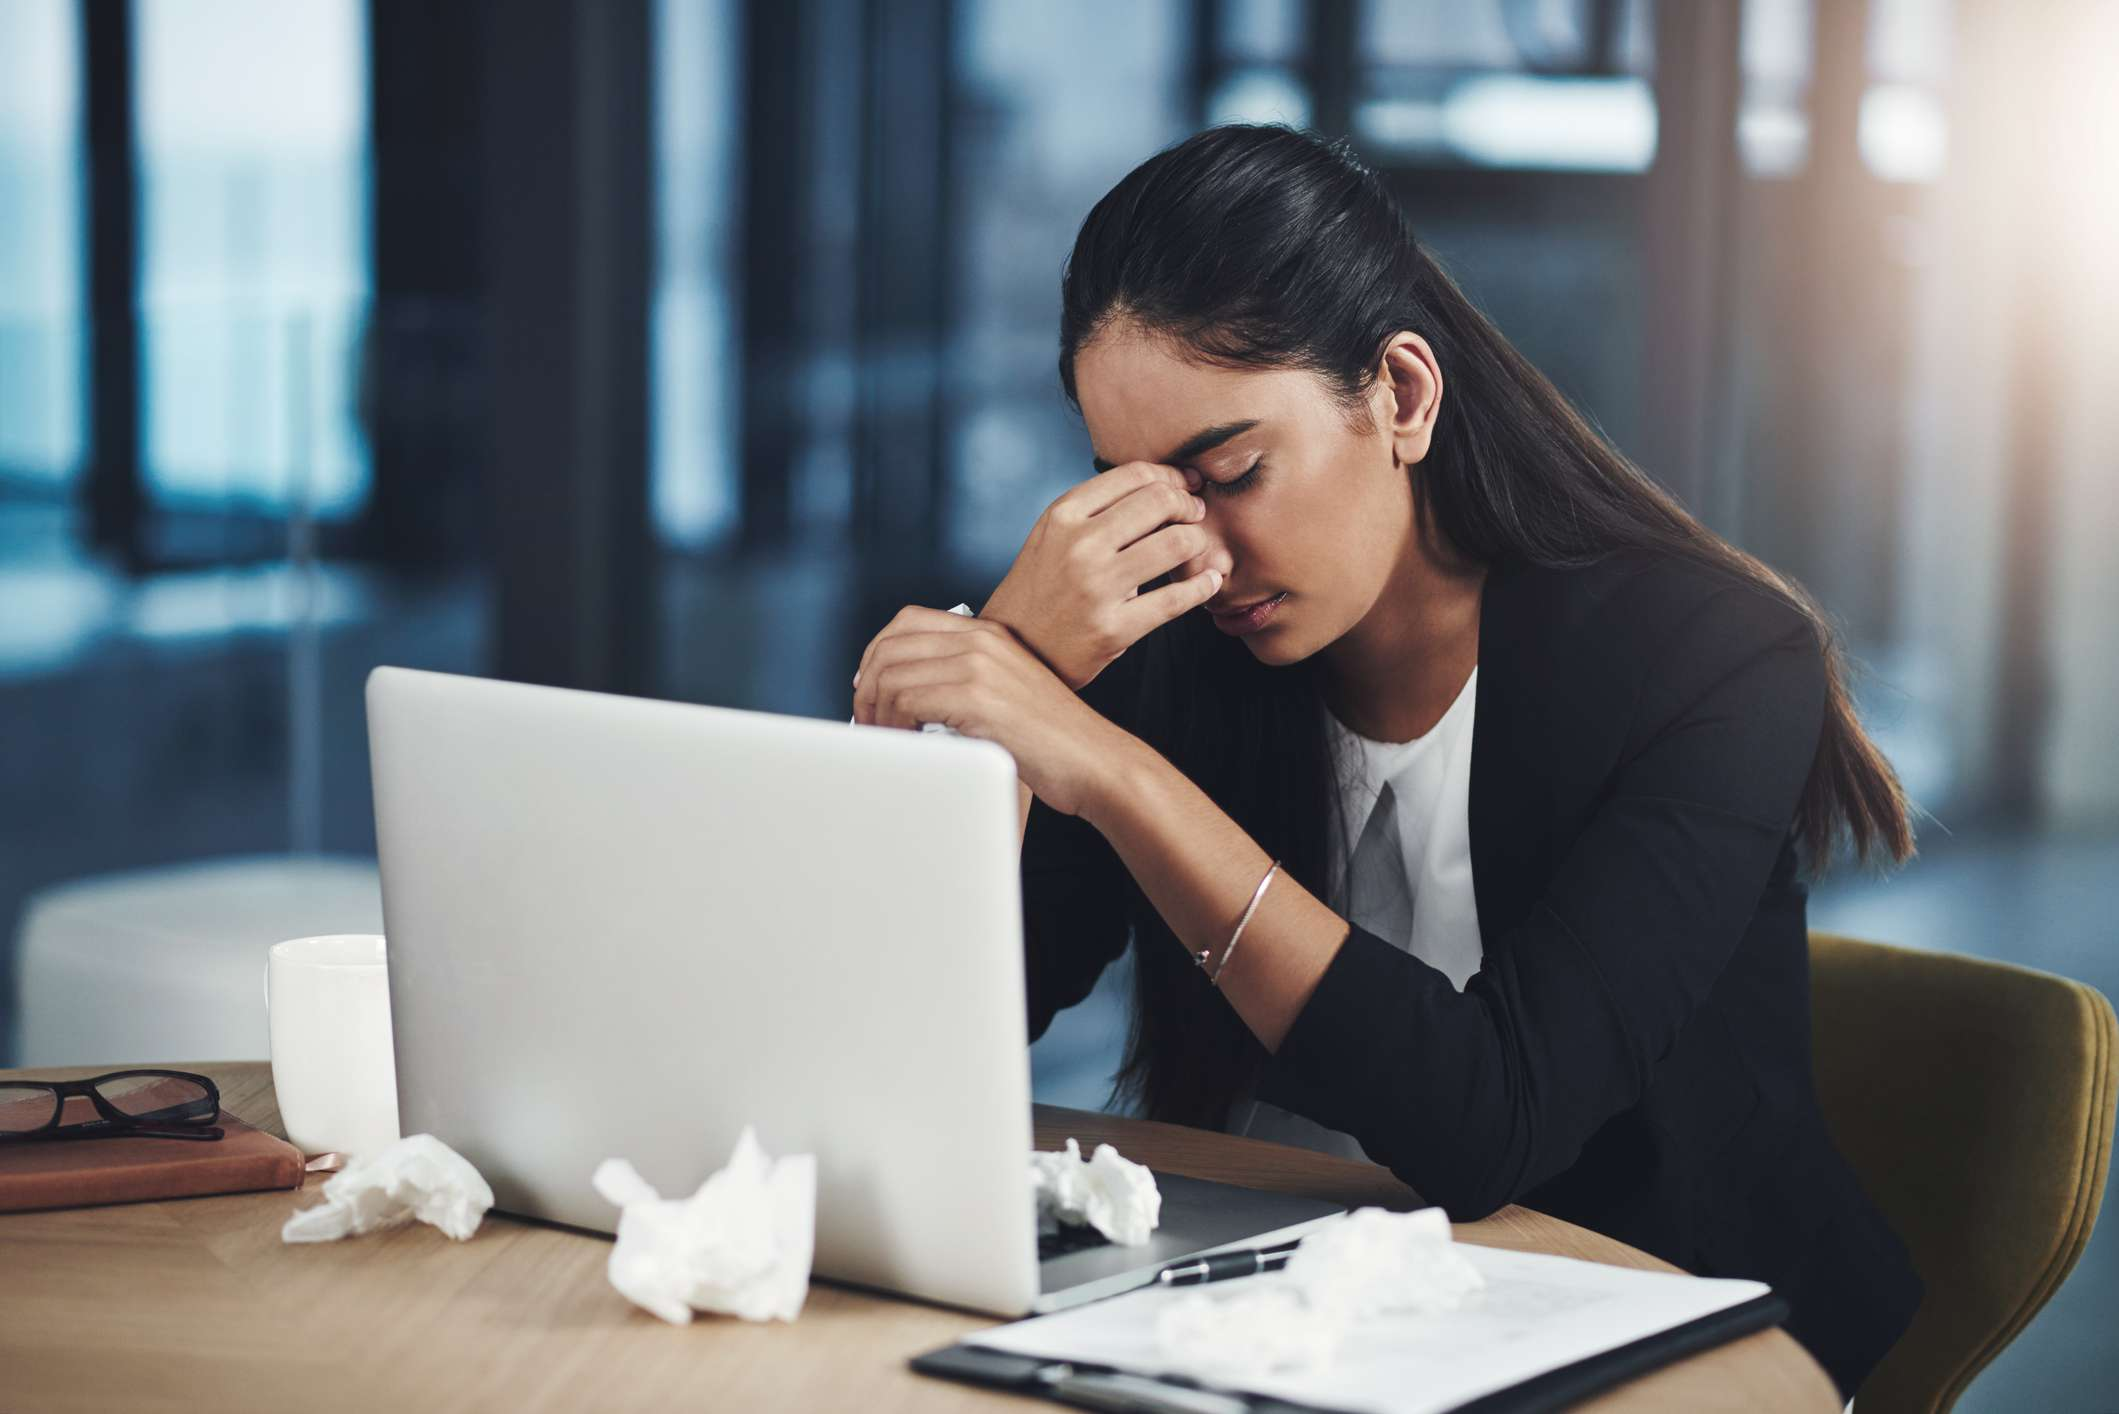 Shot of a young businesswoman suffering with a headache, holding her sinuses, while working in an office